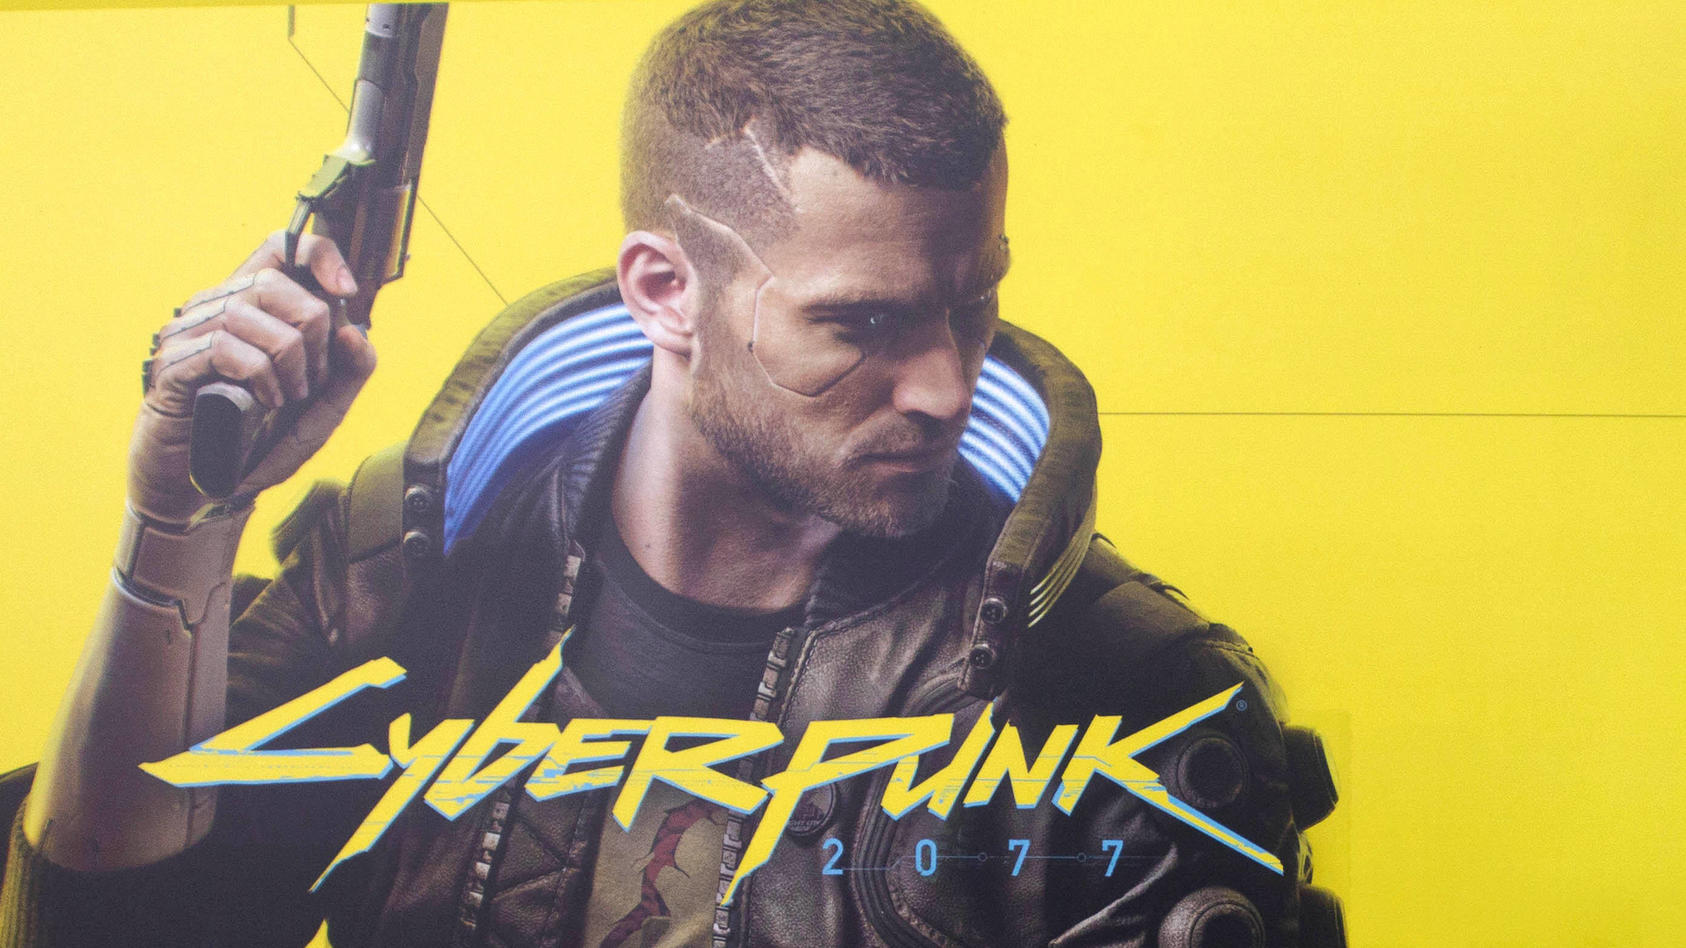 December 10, 2020, Moscow, Russia: A worker wearing a glove displays a game disc on the shelf..Cyberpunk 2077 is a 2020